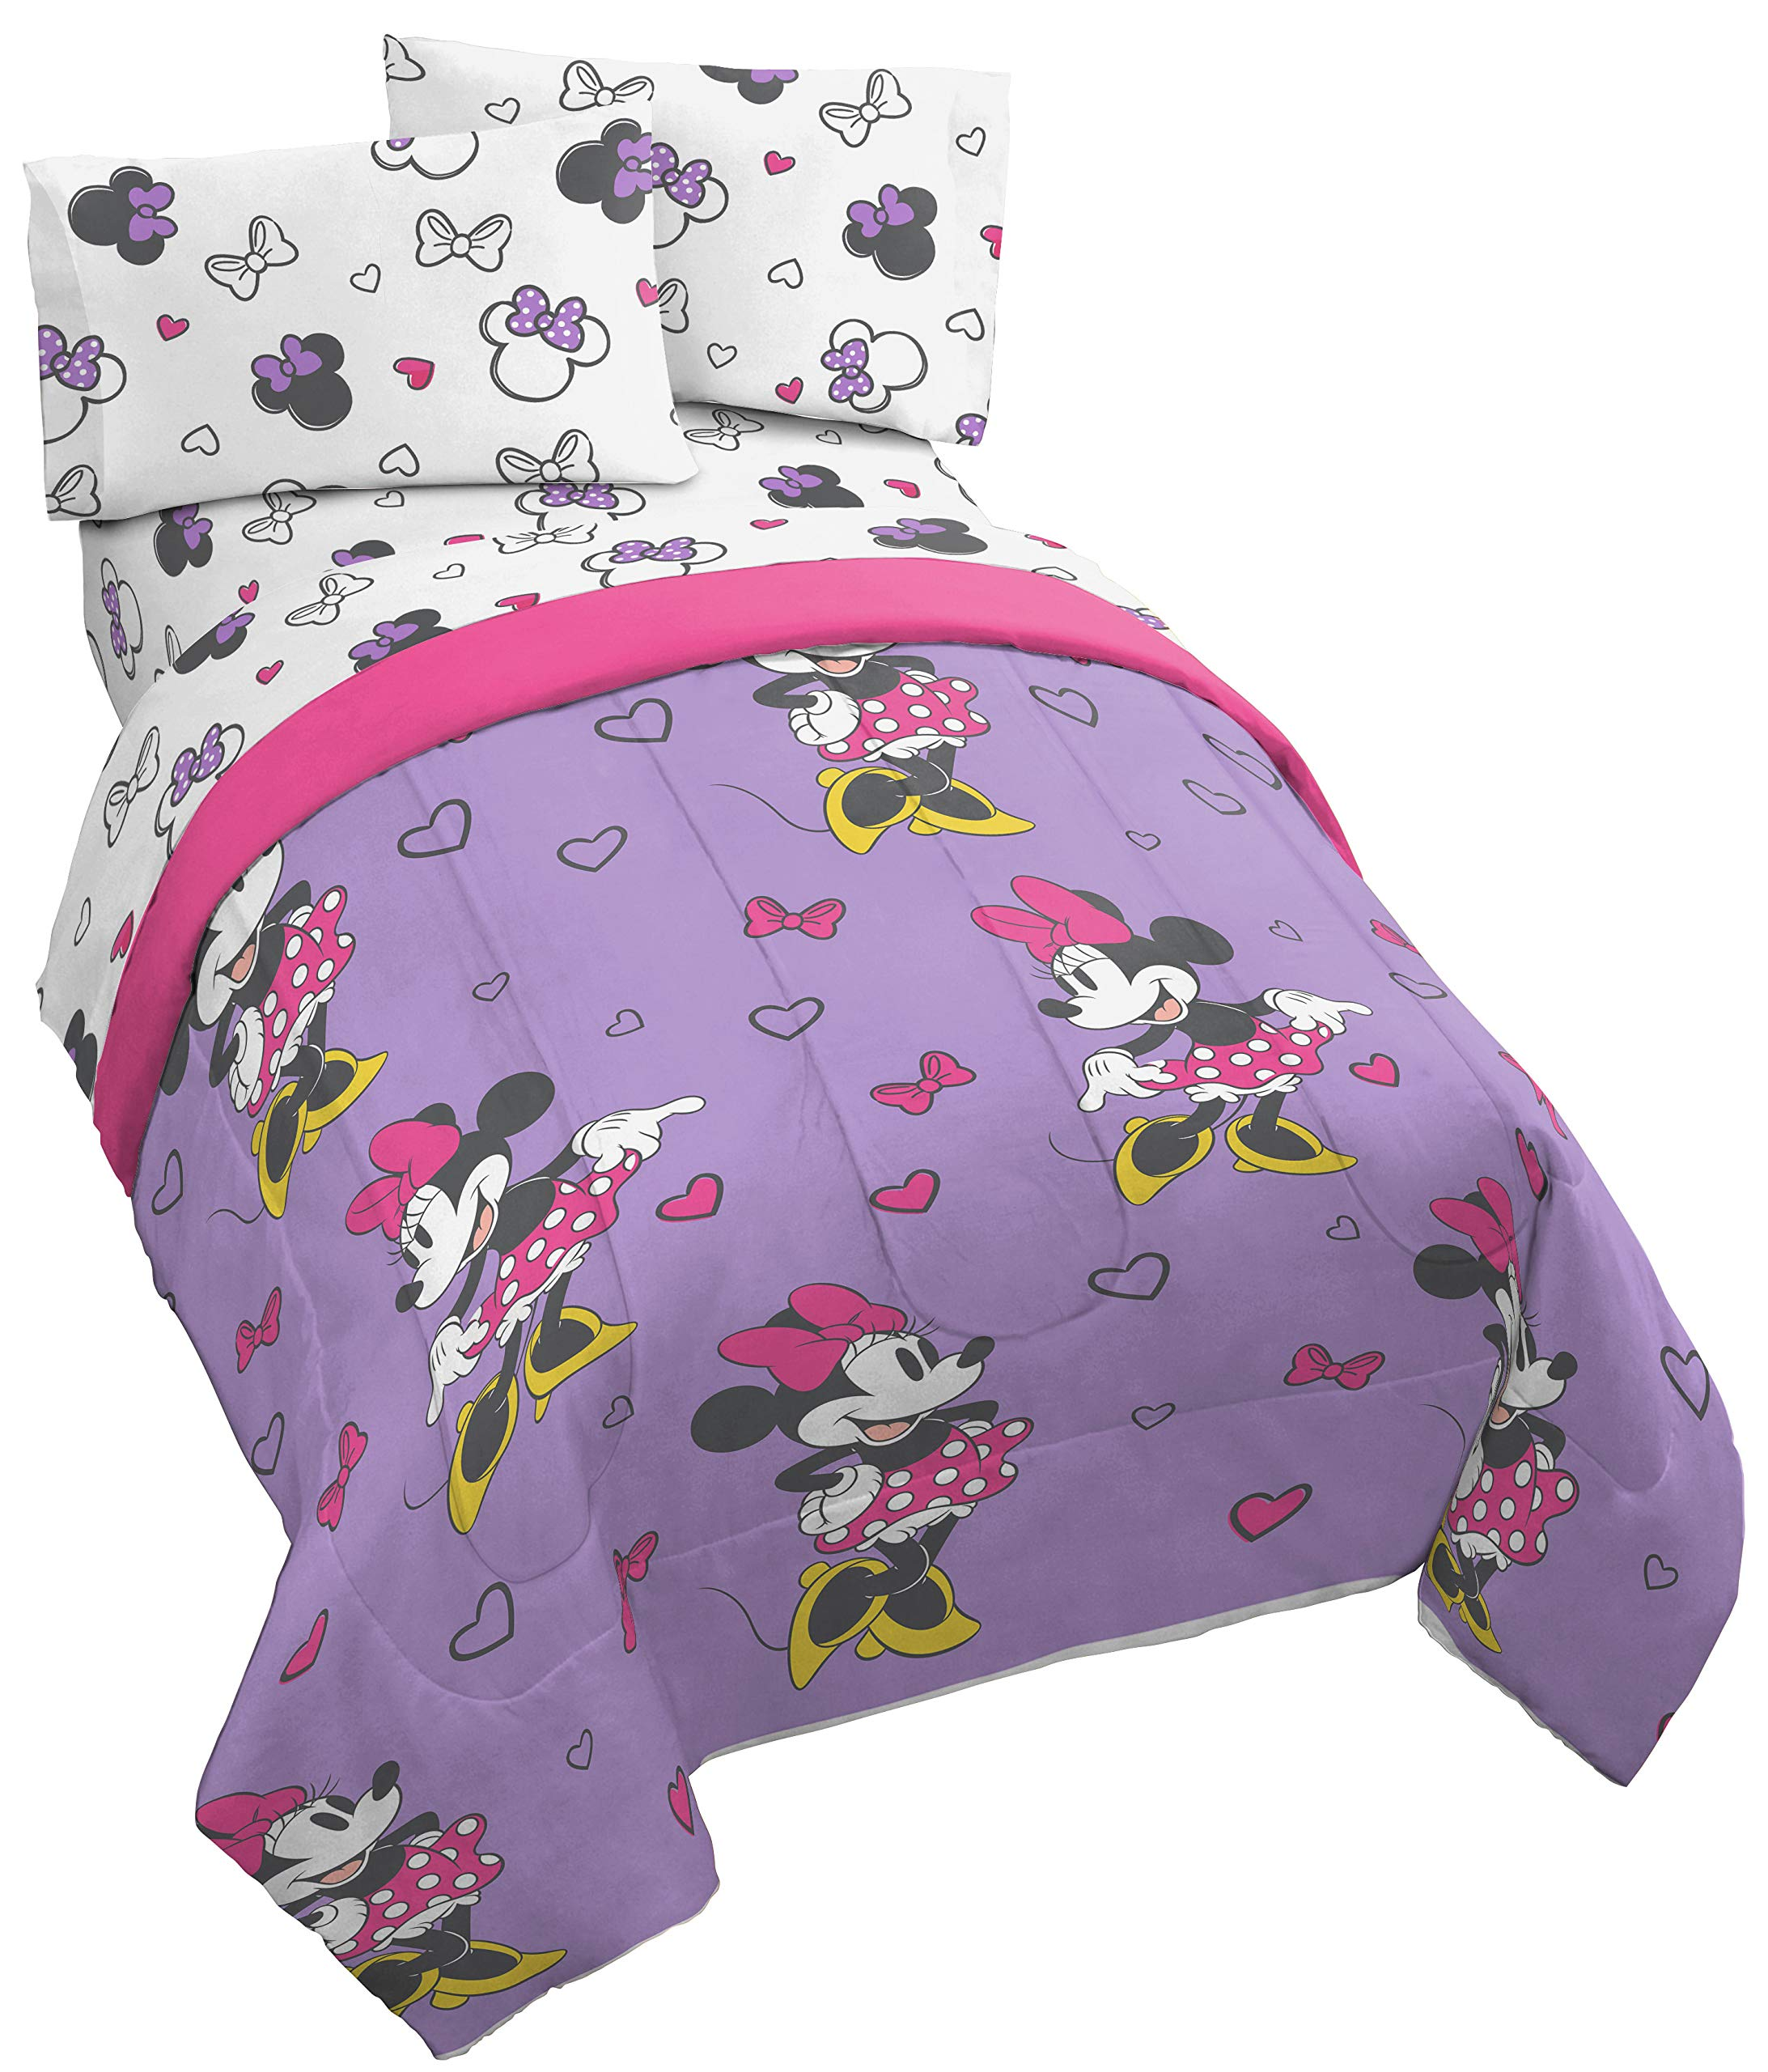 Disney Minnie Mouse Purple Love 5 Piece Full Bed Set - Includes Reversible Comforter & Sheet Set - Super Soft Fade Resistant Polyester - (Official Disney Product)